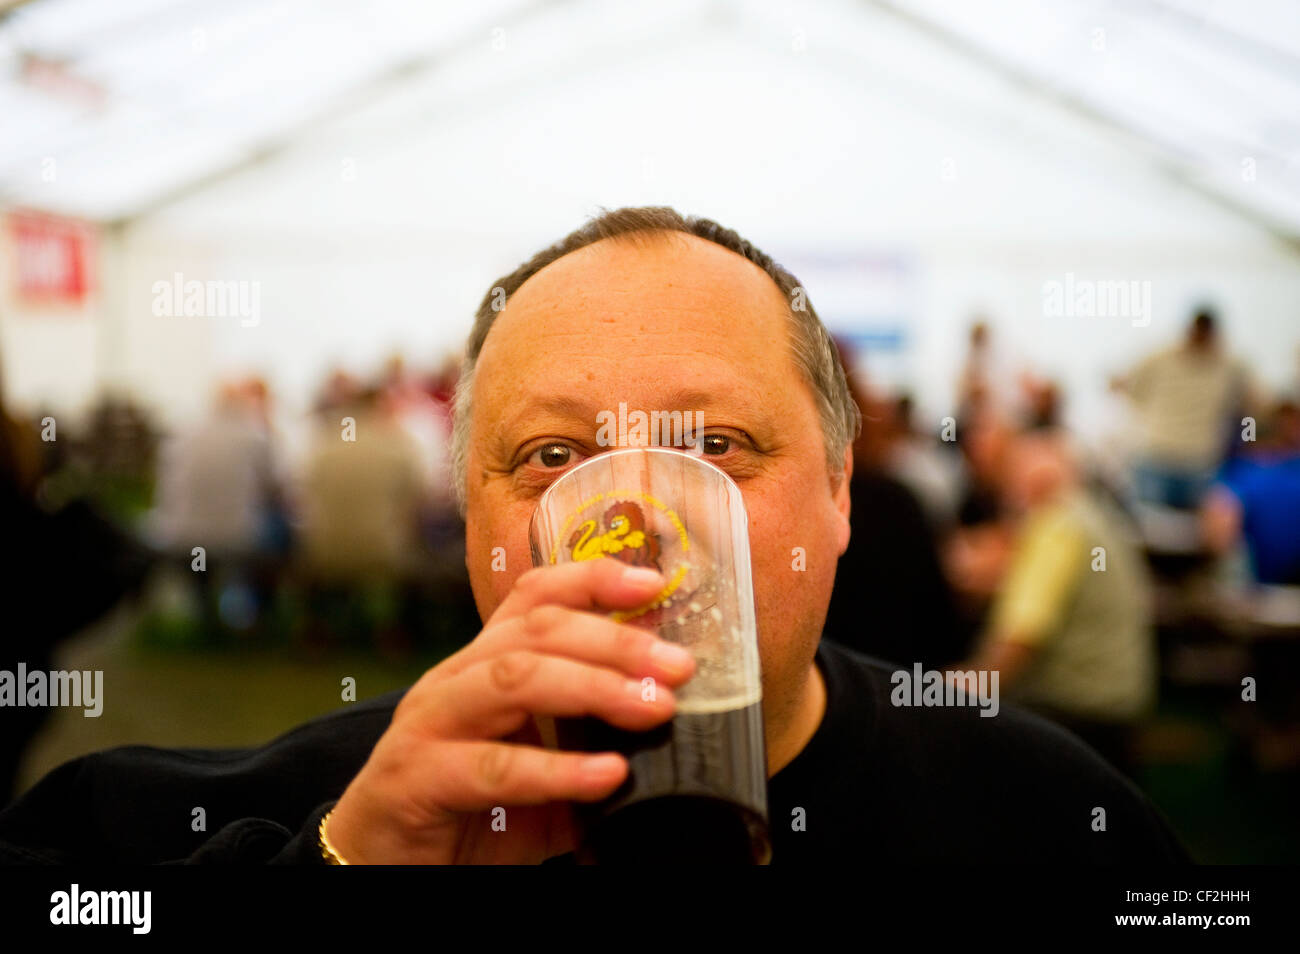 A man drinking a pint of real ale inside a marquee at the Hoop Beer Festival. - Stock Image